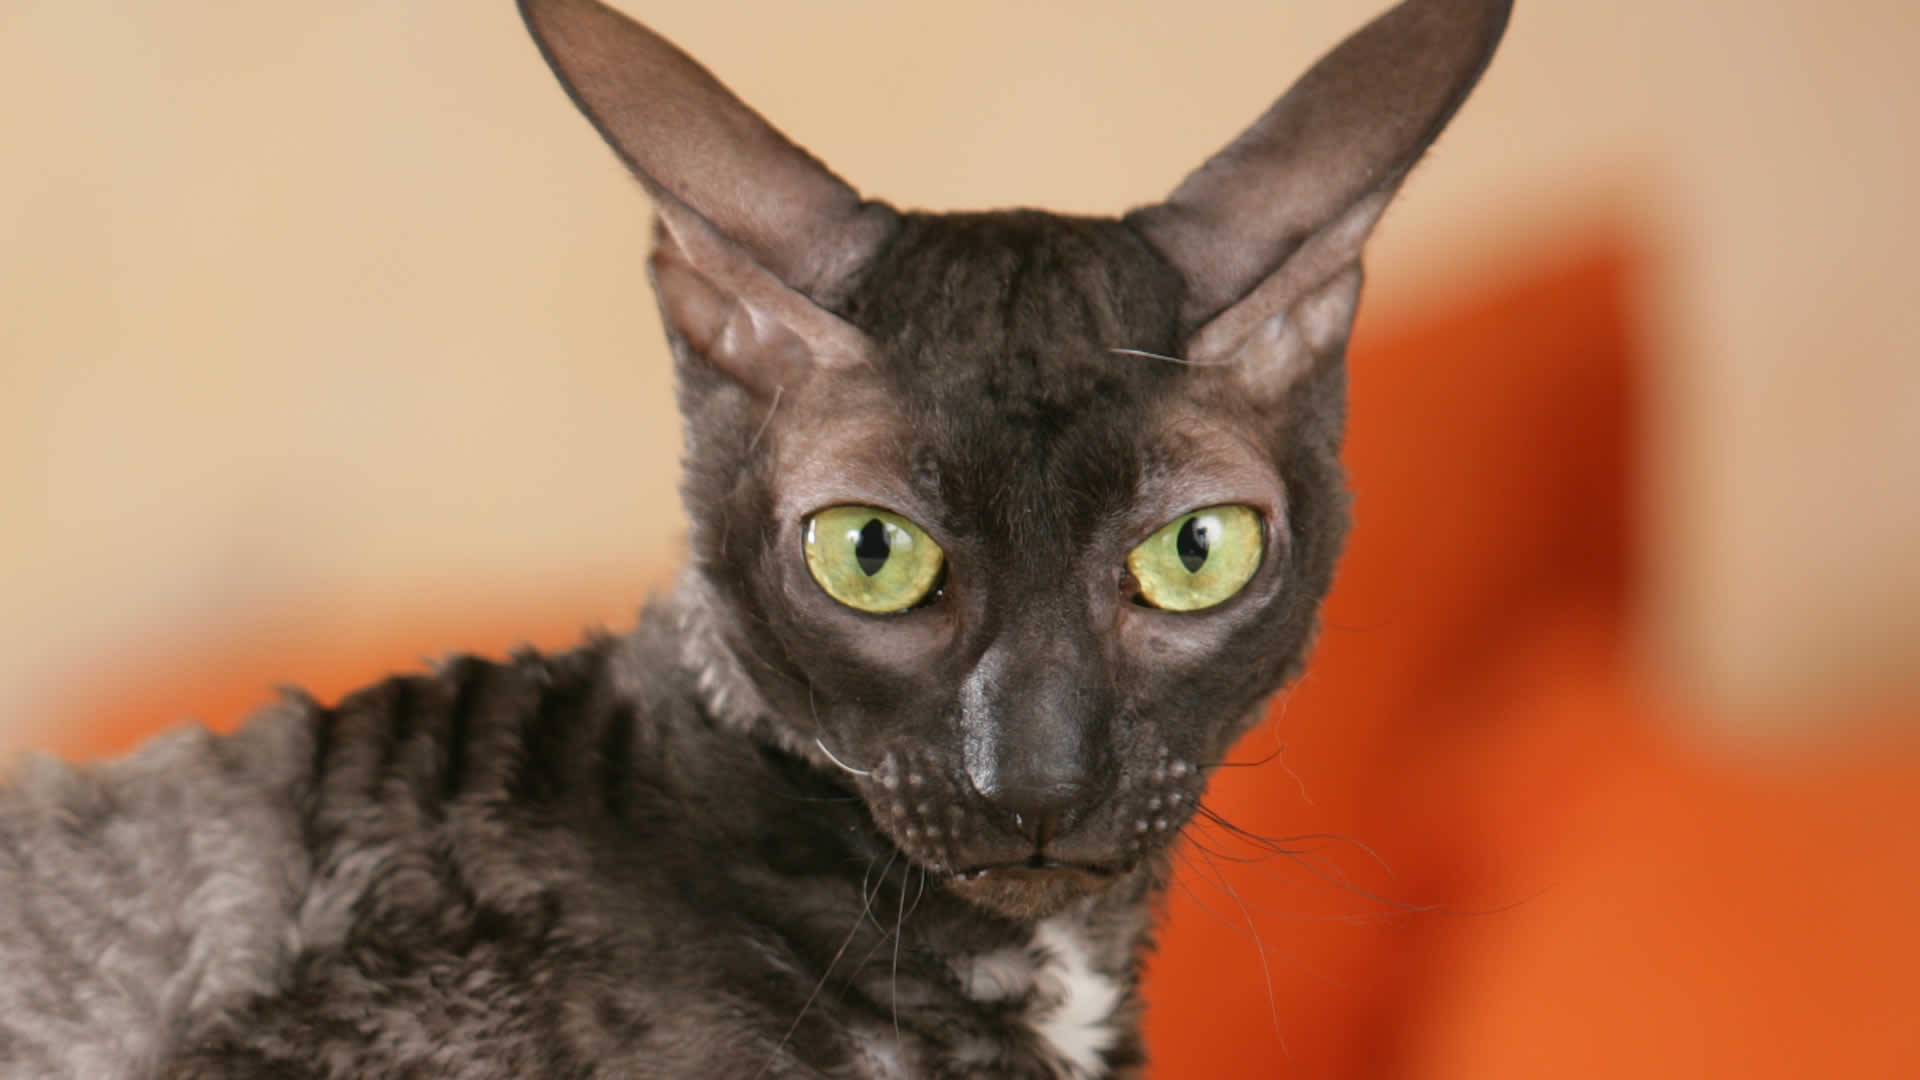 One of the possible eye colors for the Cornish Rex is golden yellow